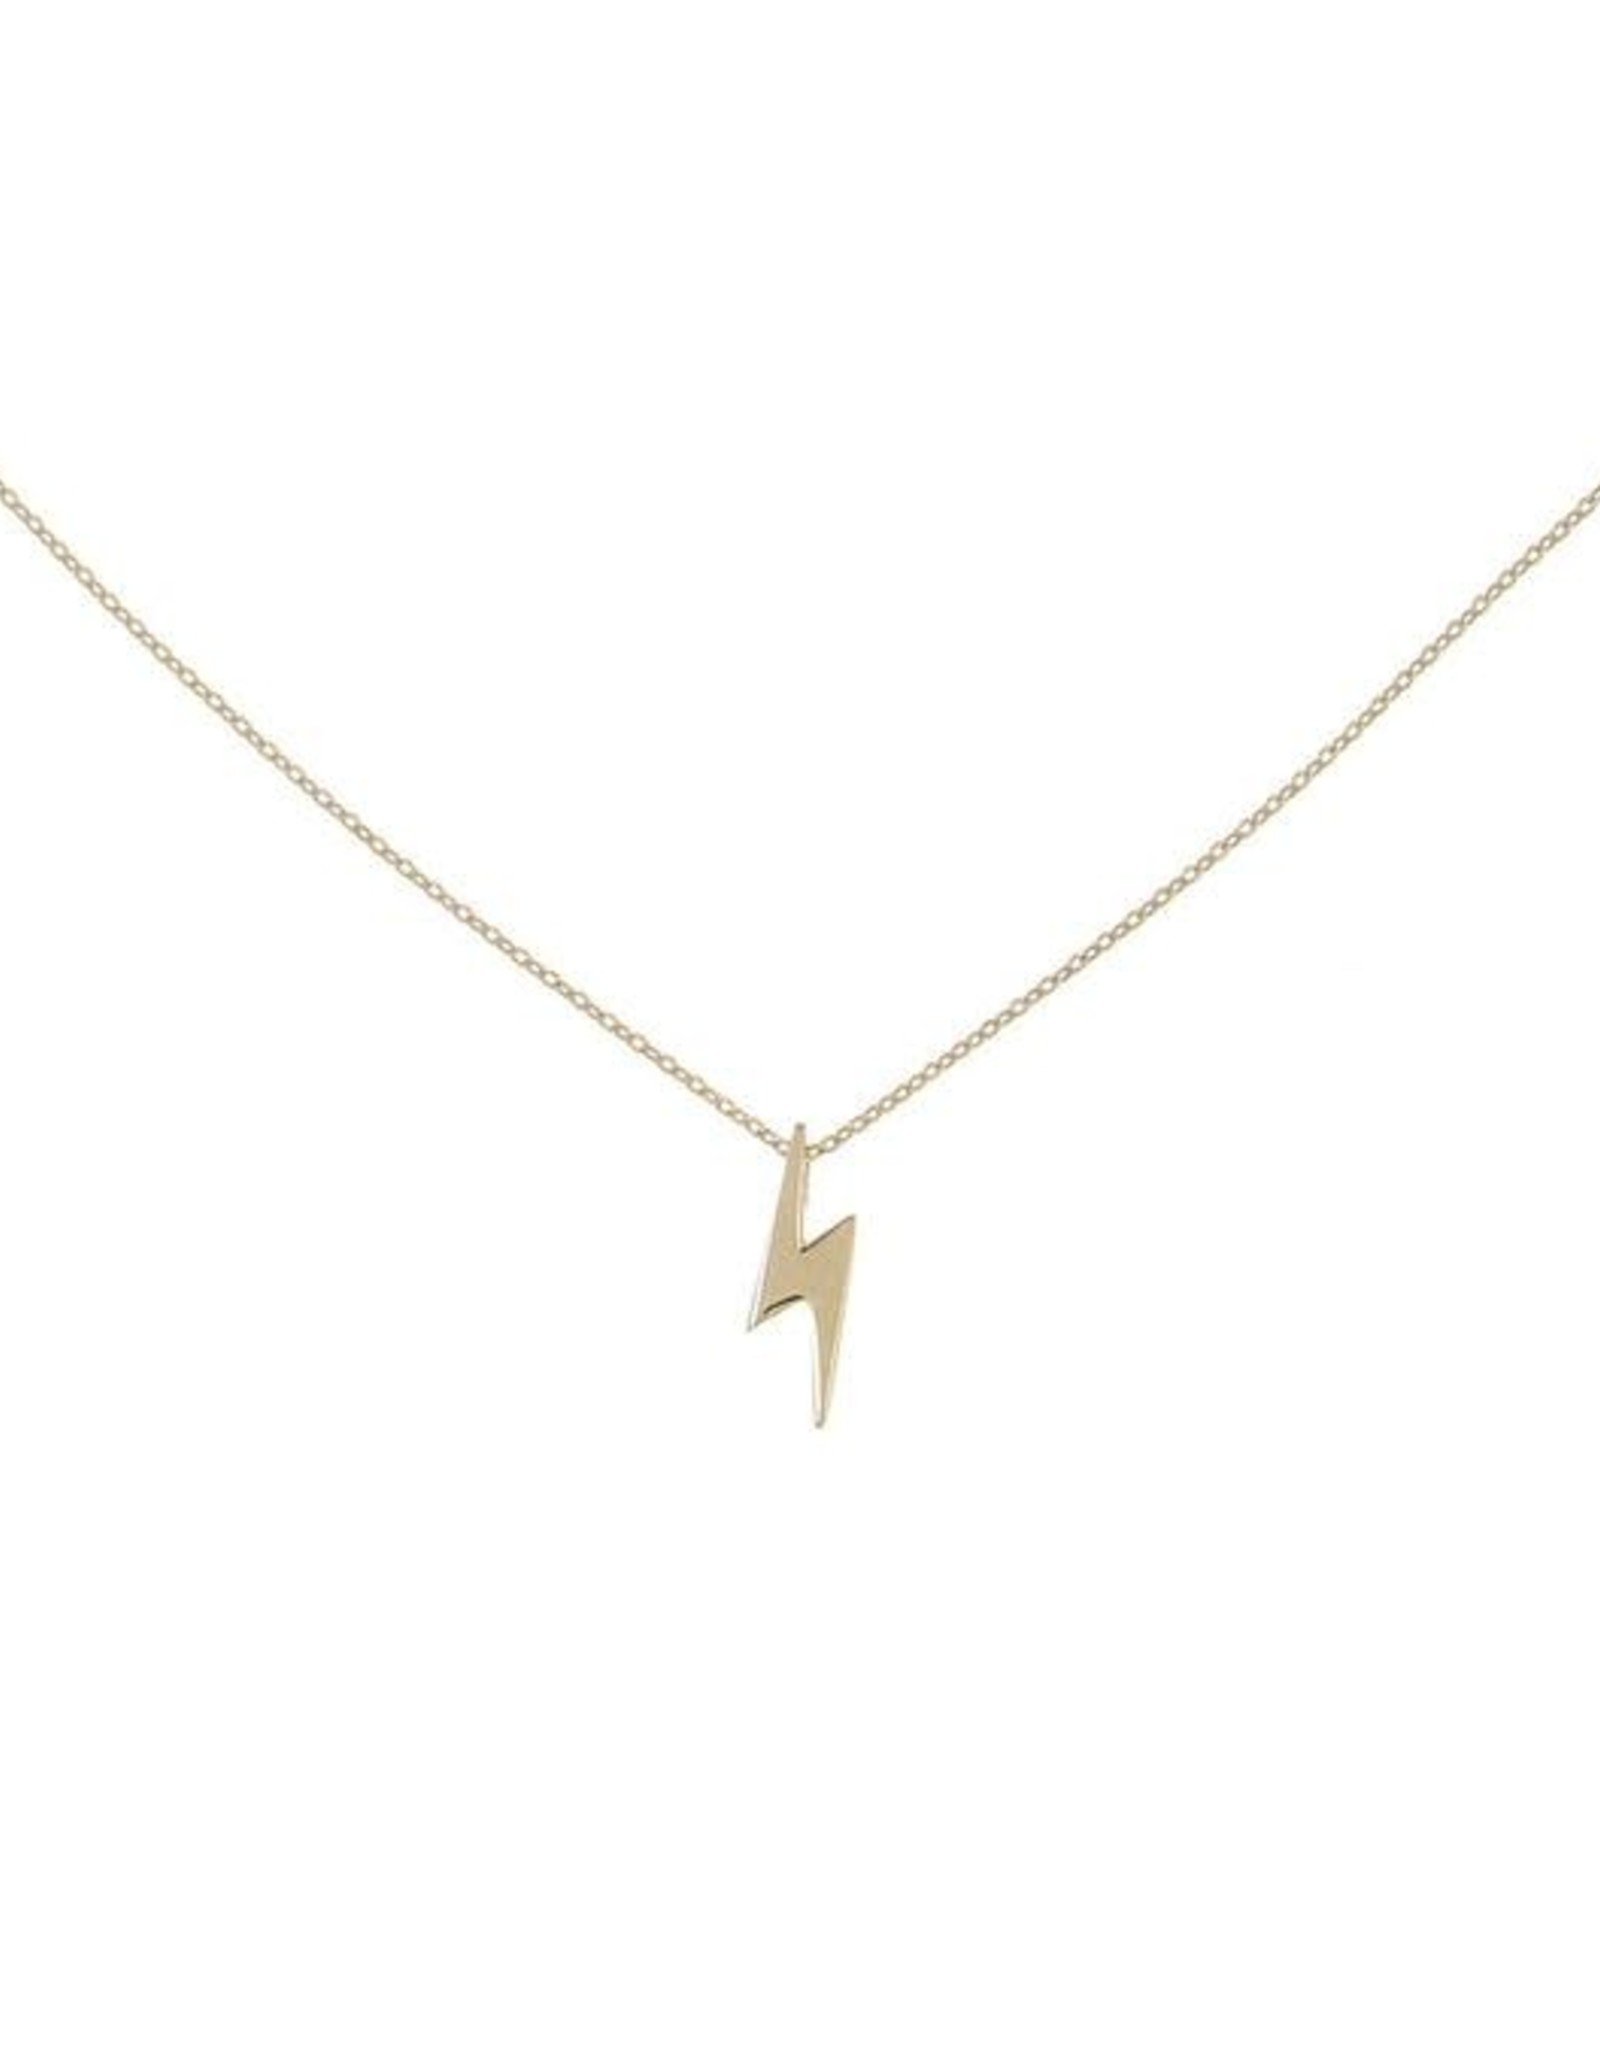 Adinas Lightning Necklace 14K